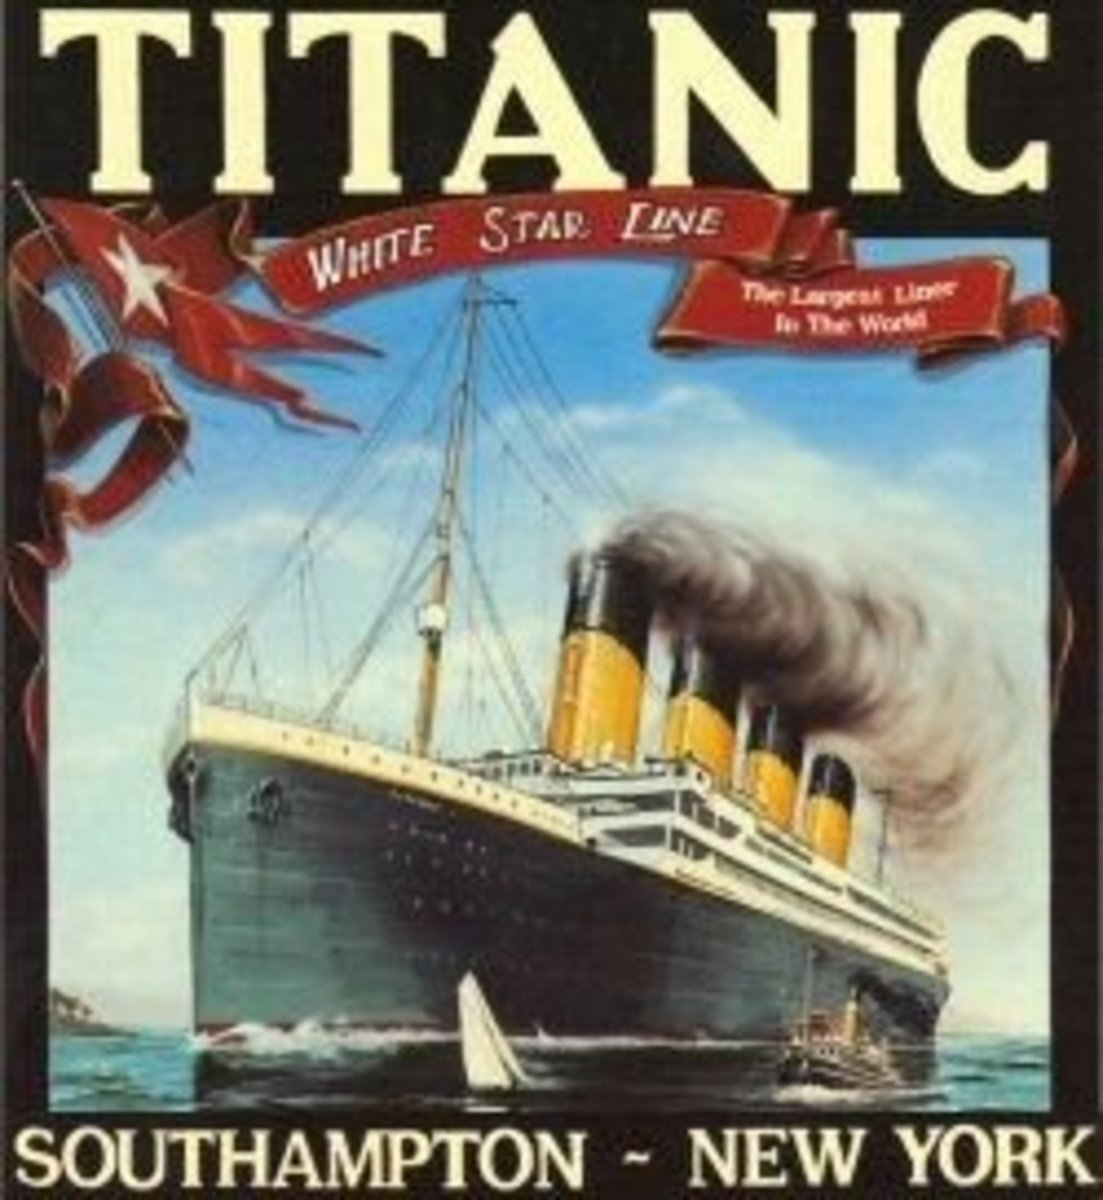 RMS Titanic, Ship of Dreams